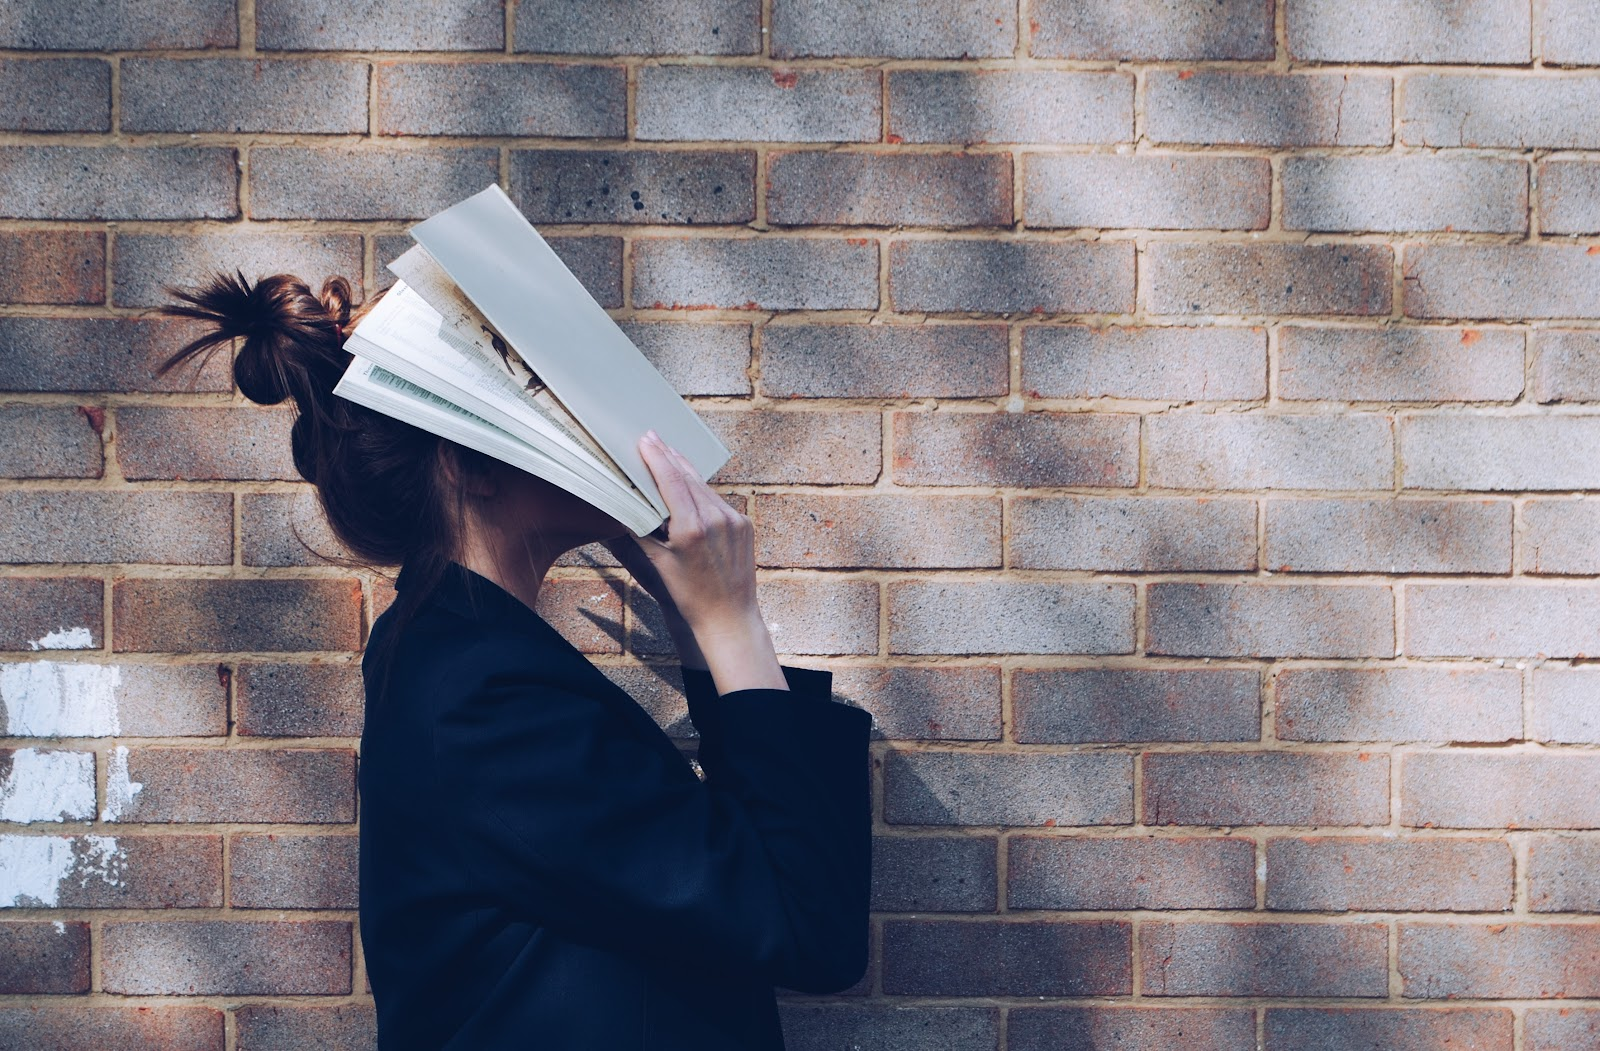 A person buries their head into a book in front of a wall